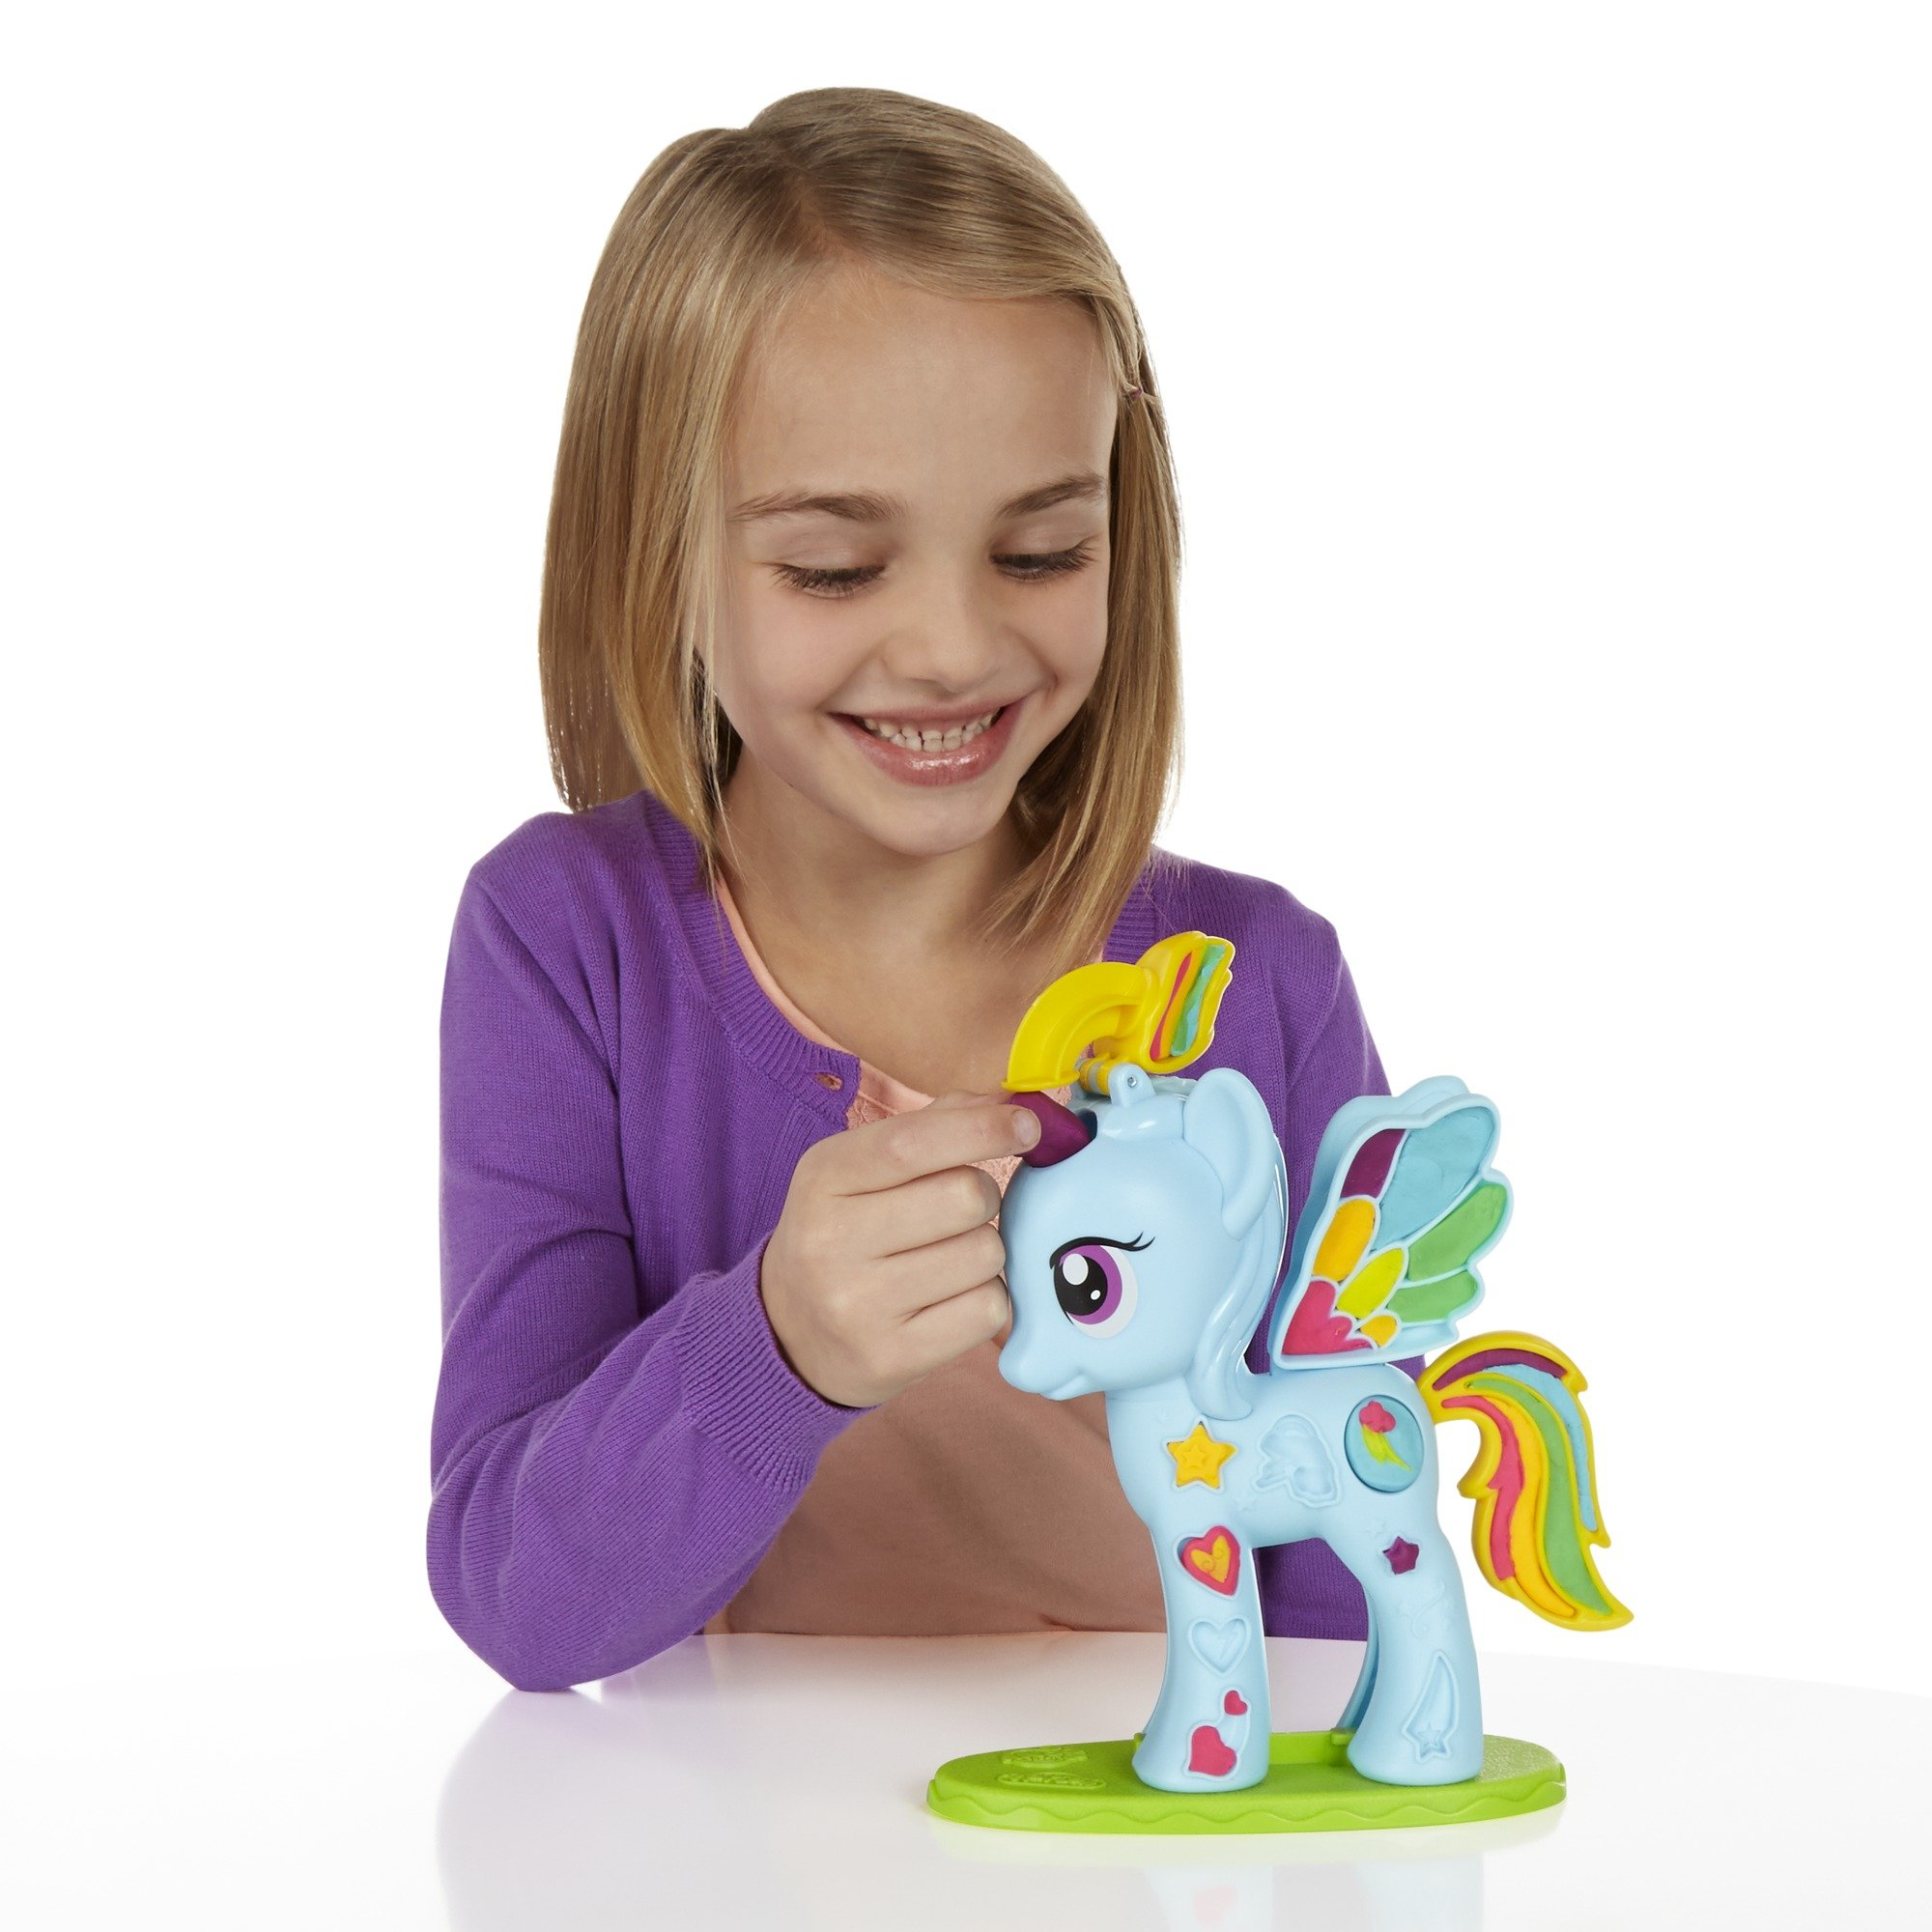 Most Popular Toys for Girls Play Dough My Little Pony Rainbow Dash